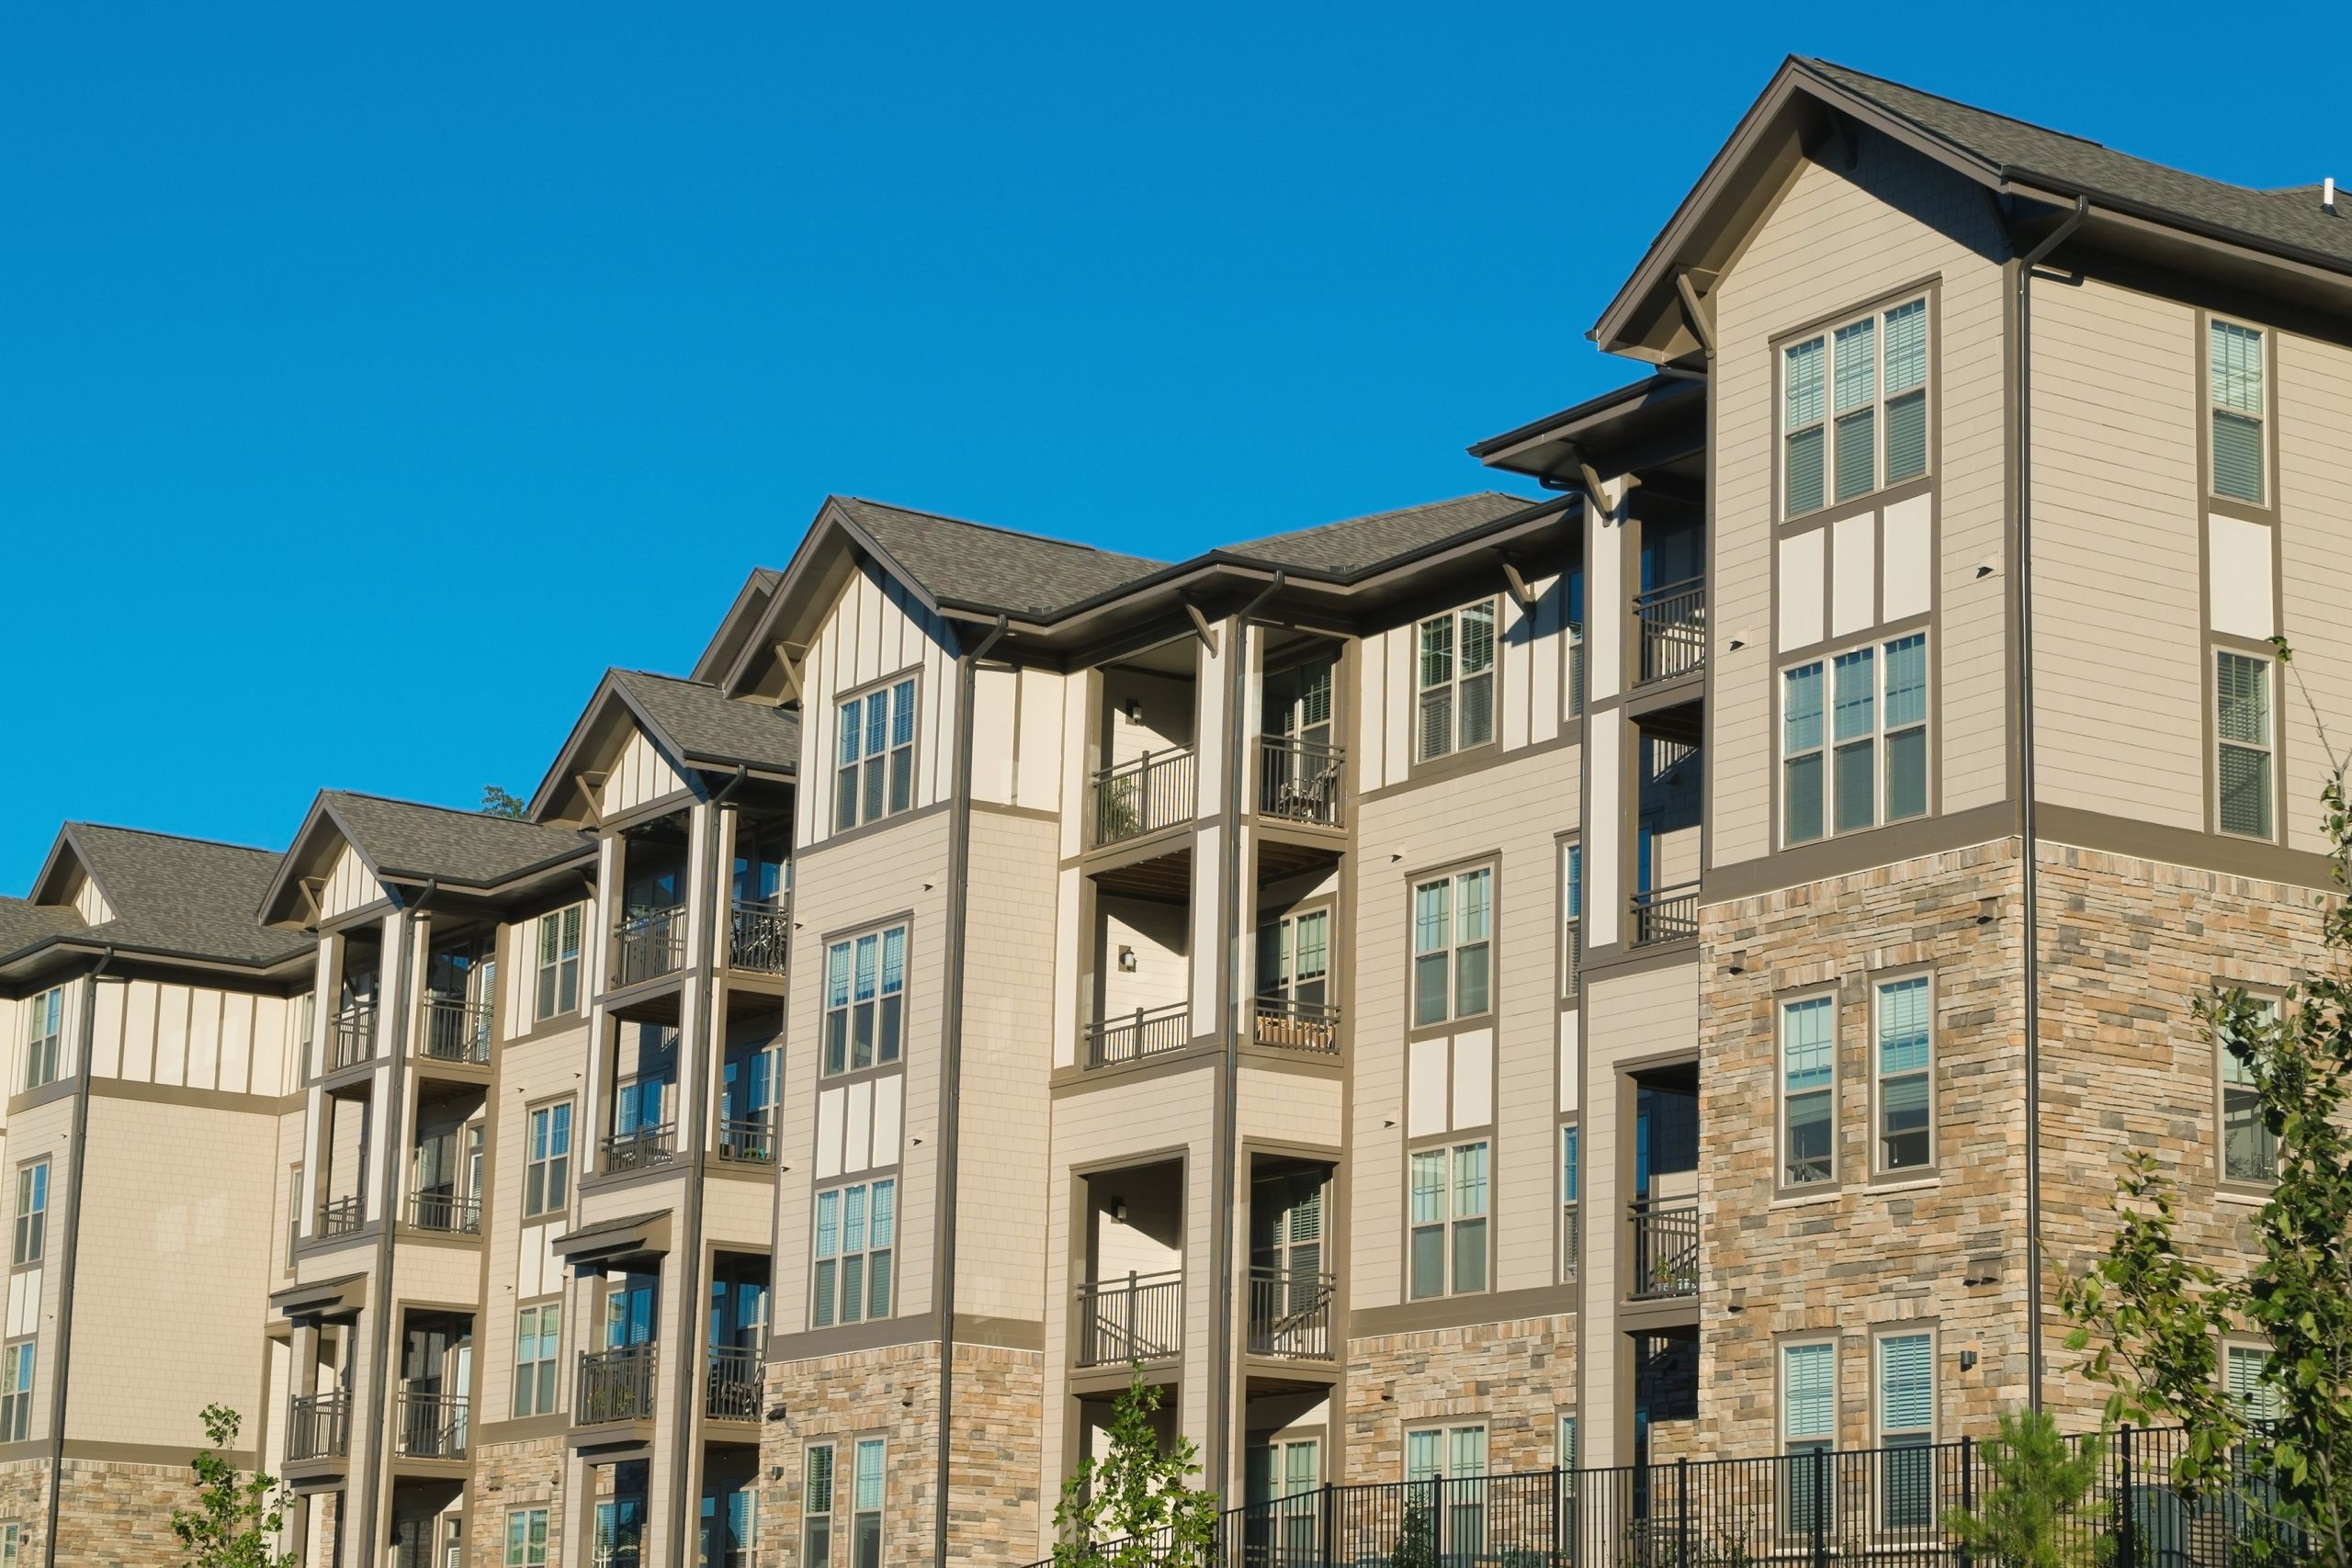 Townhouse Complex with tan colored commercial composite siding blue sky above